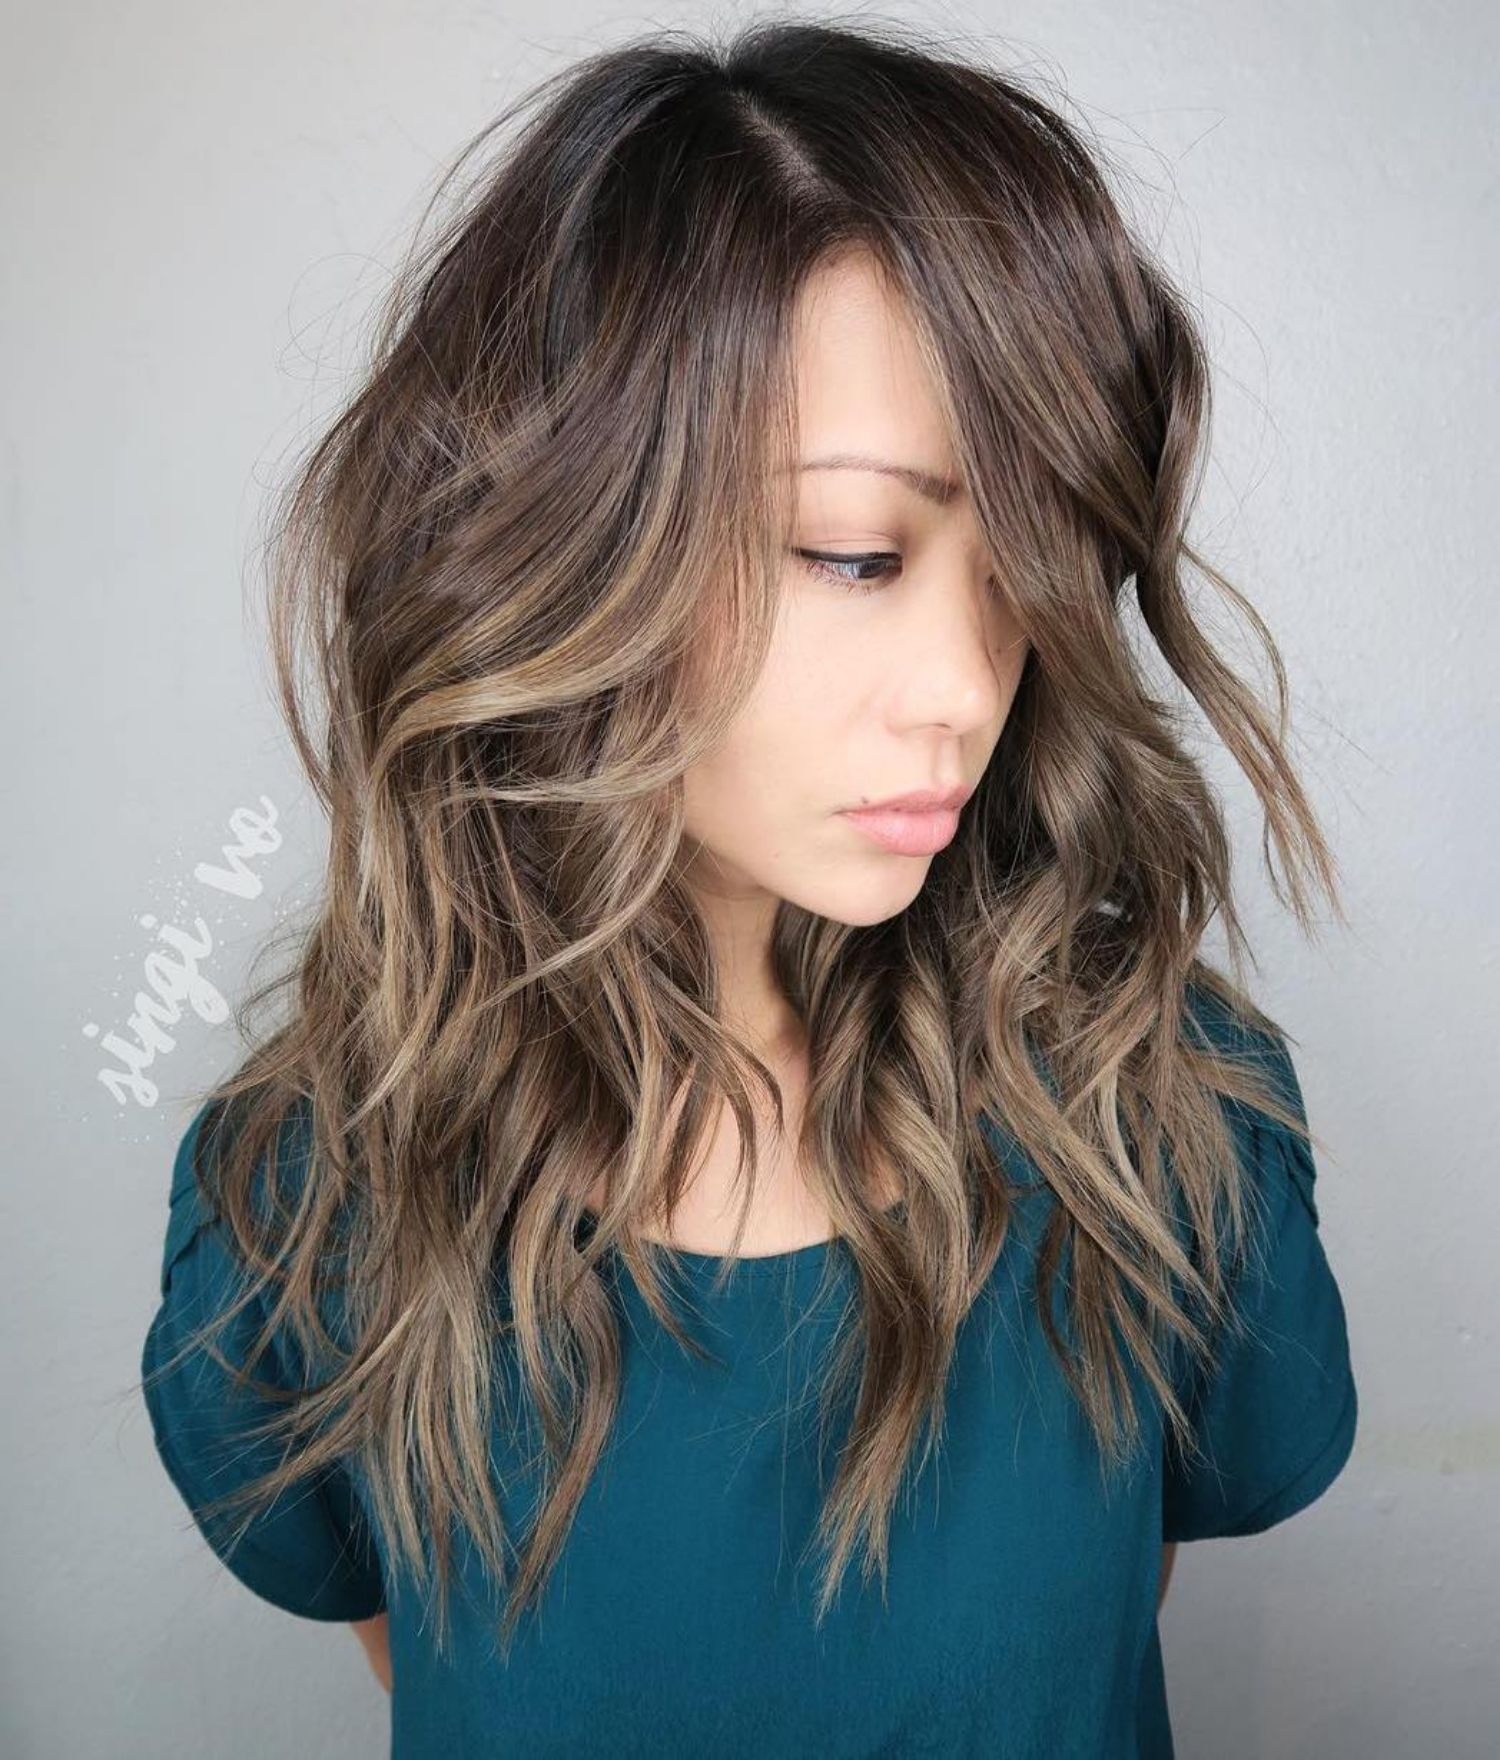 Layered Haircut For Long Thick Hair Thick Hair Styles Long Thick Hair Haircuts For Long Hair